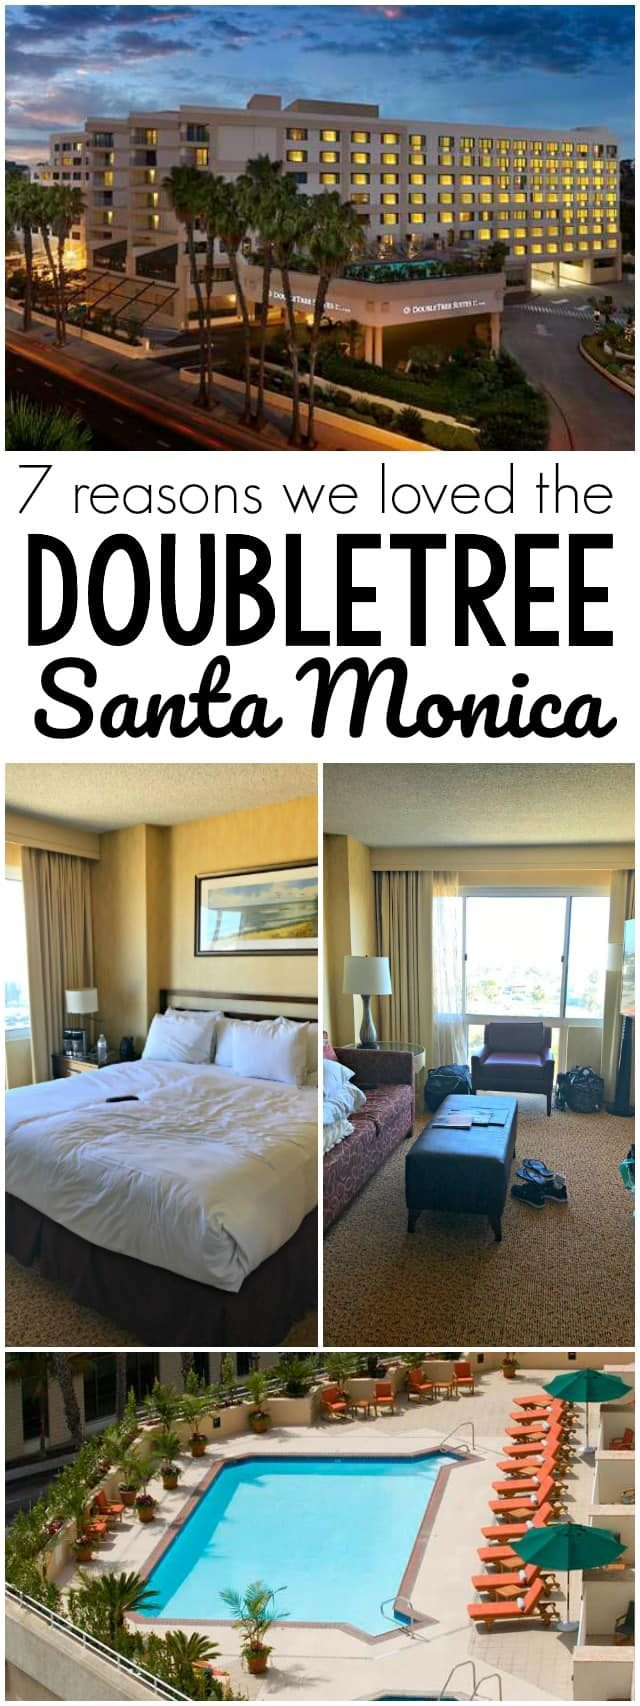 7 Reasons why we loved the DoubleTree Hotel Santa Monica collage - this hotel is perfect for families visiting Santa Monica, CA! It's the perfect location and the rooms are large.